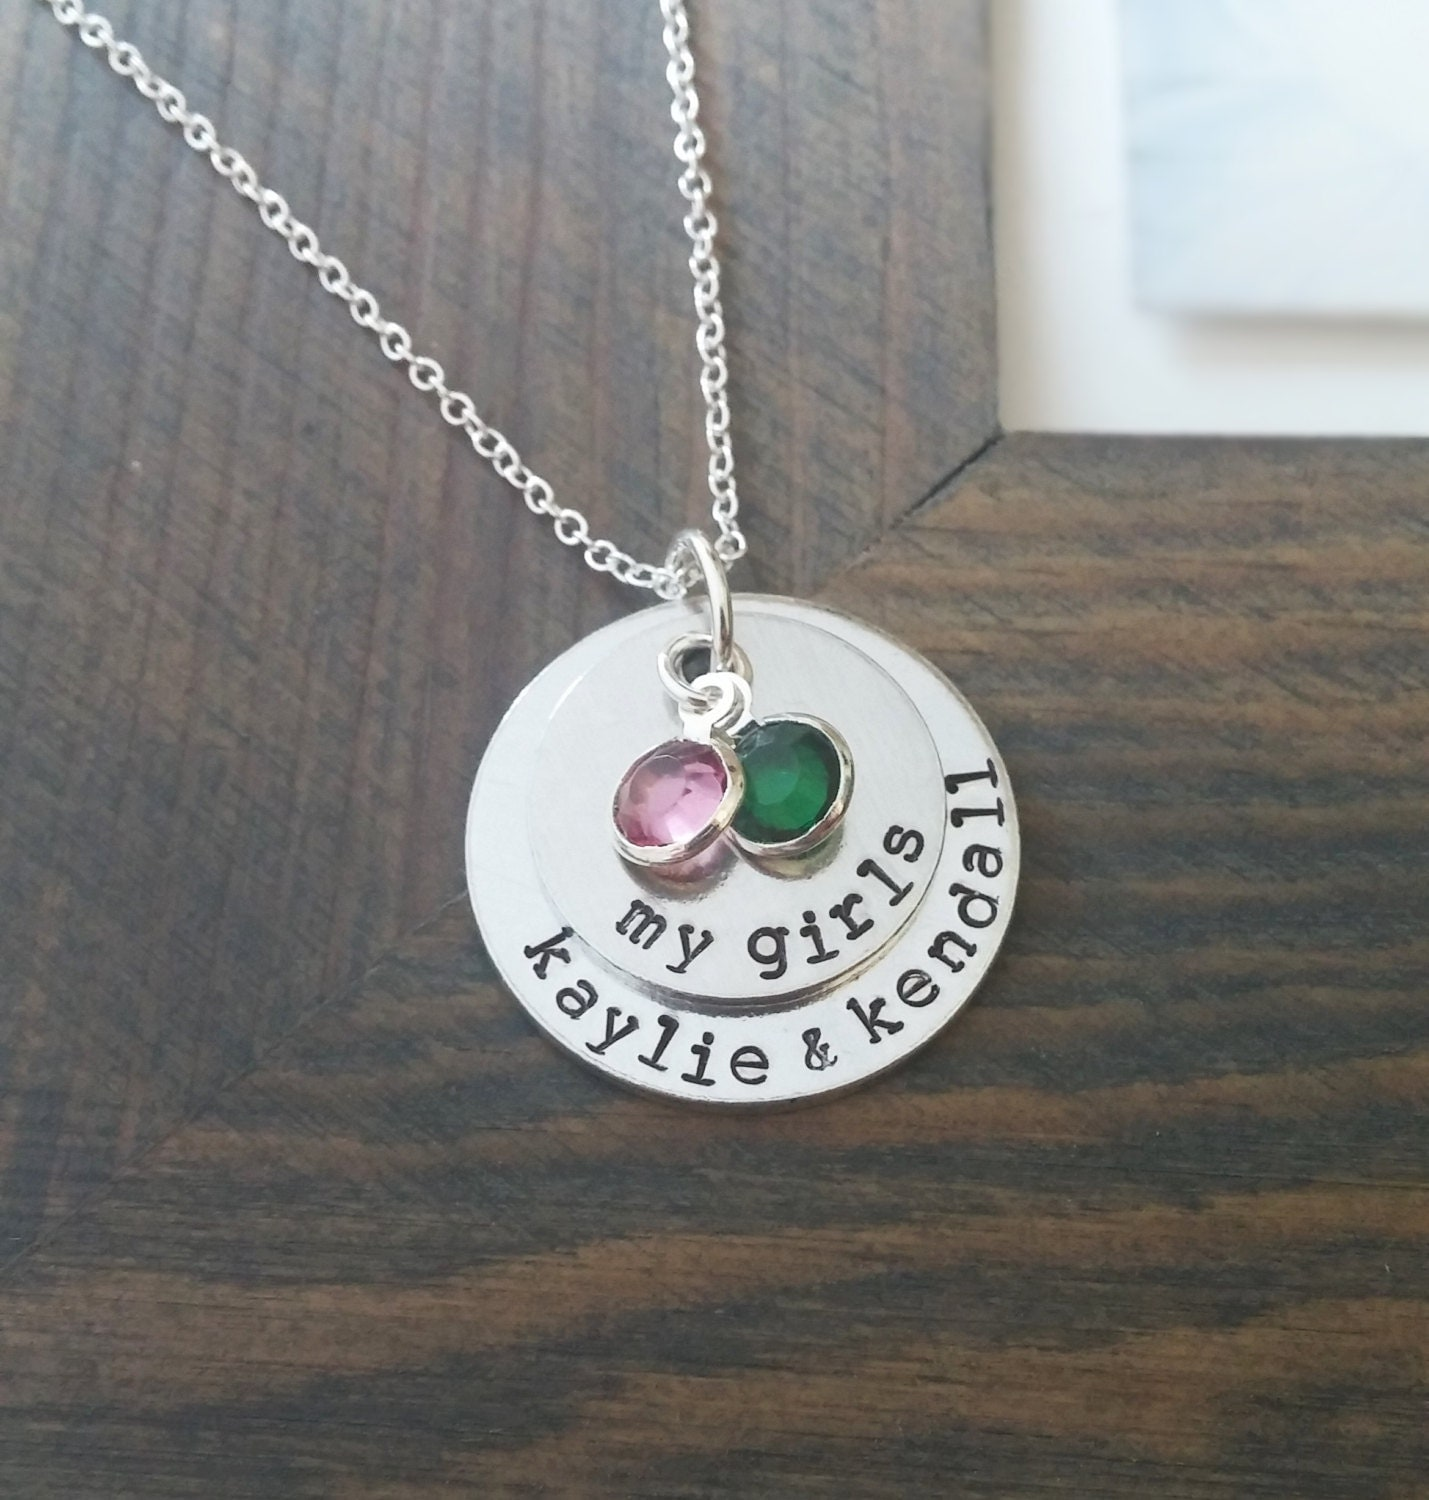 mom of girls necklace hand stamped personalized jewelry with. Black Bedroom Furniture Sets. Home Design Ideas